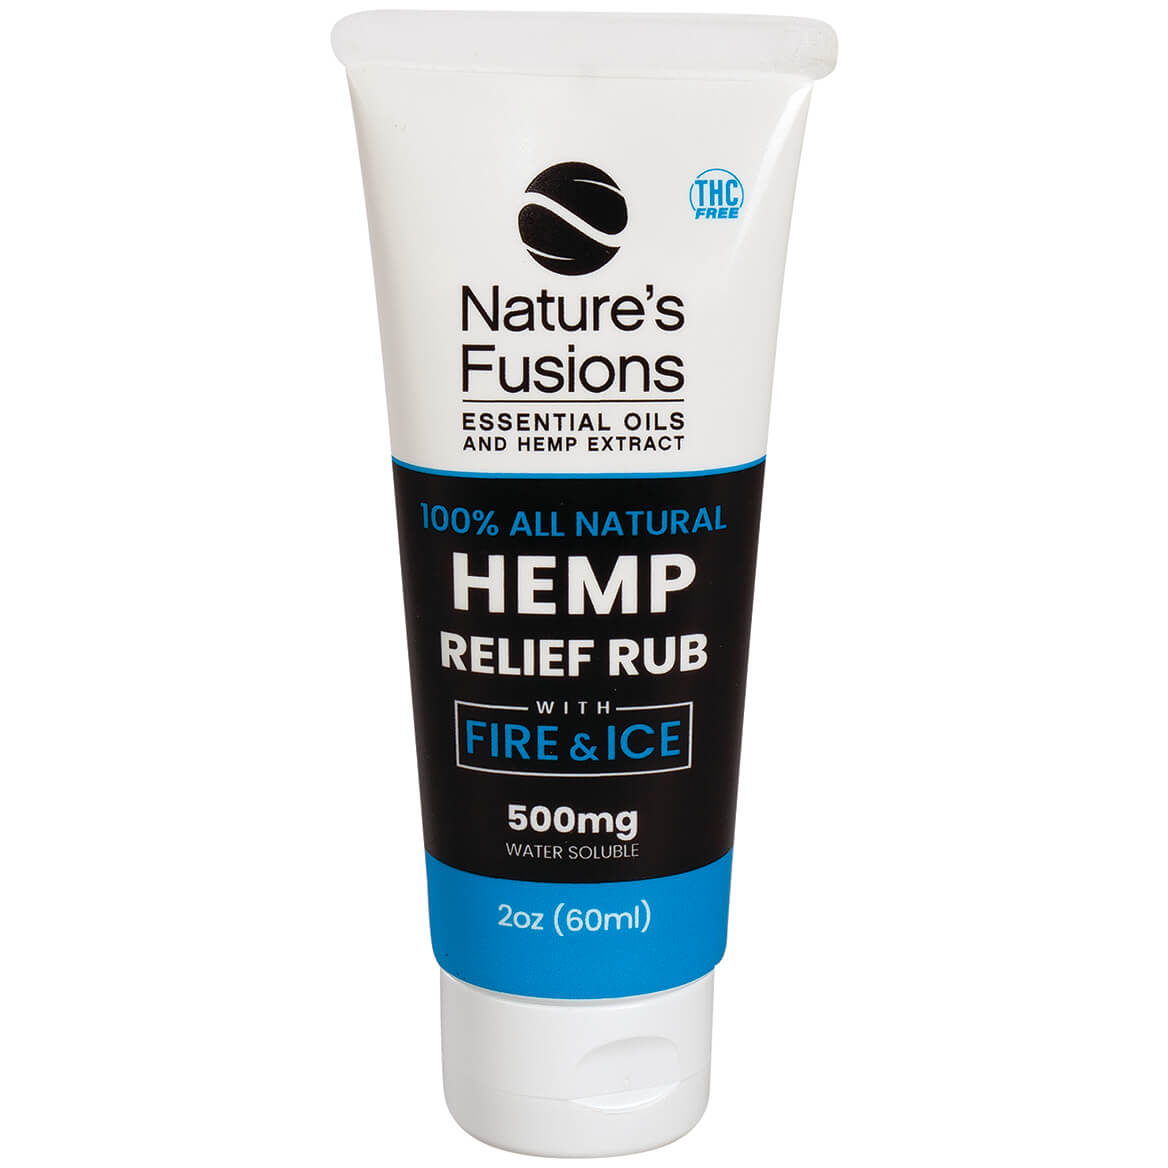 Nature's Fusions Hemp Relief Rub with Fire & Ice-371741